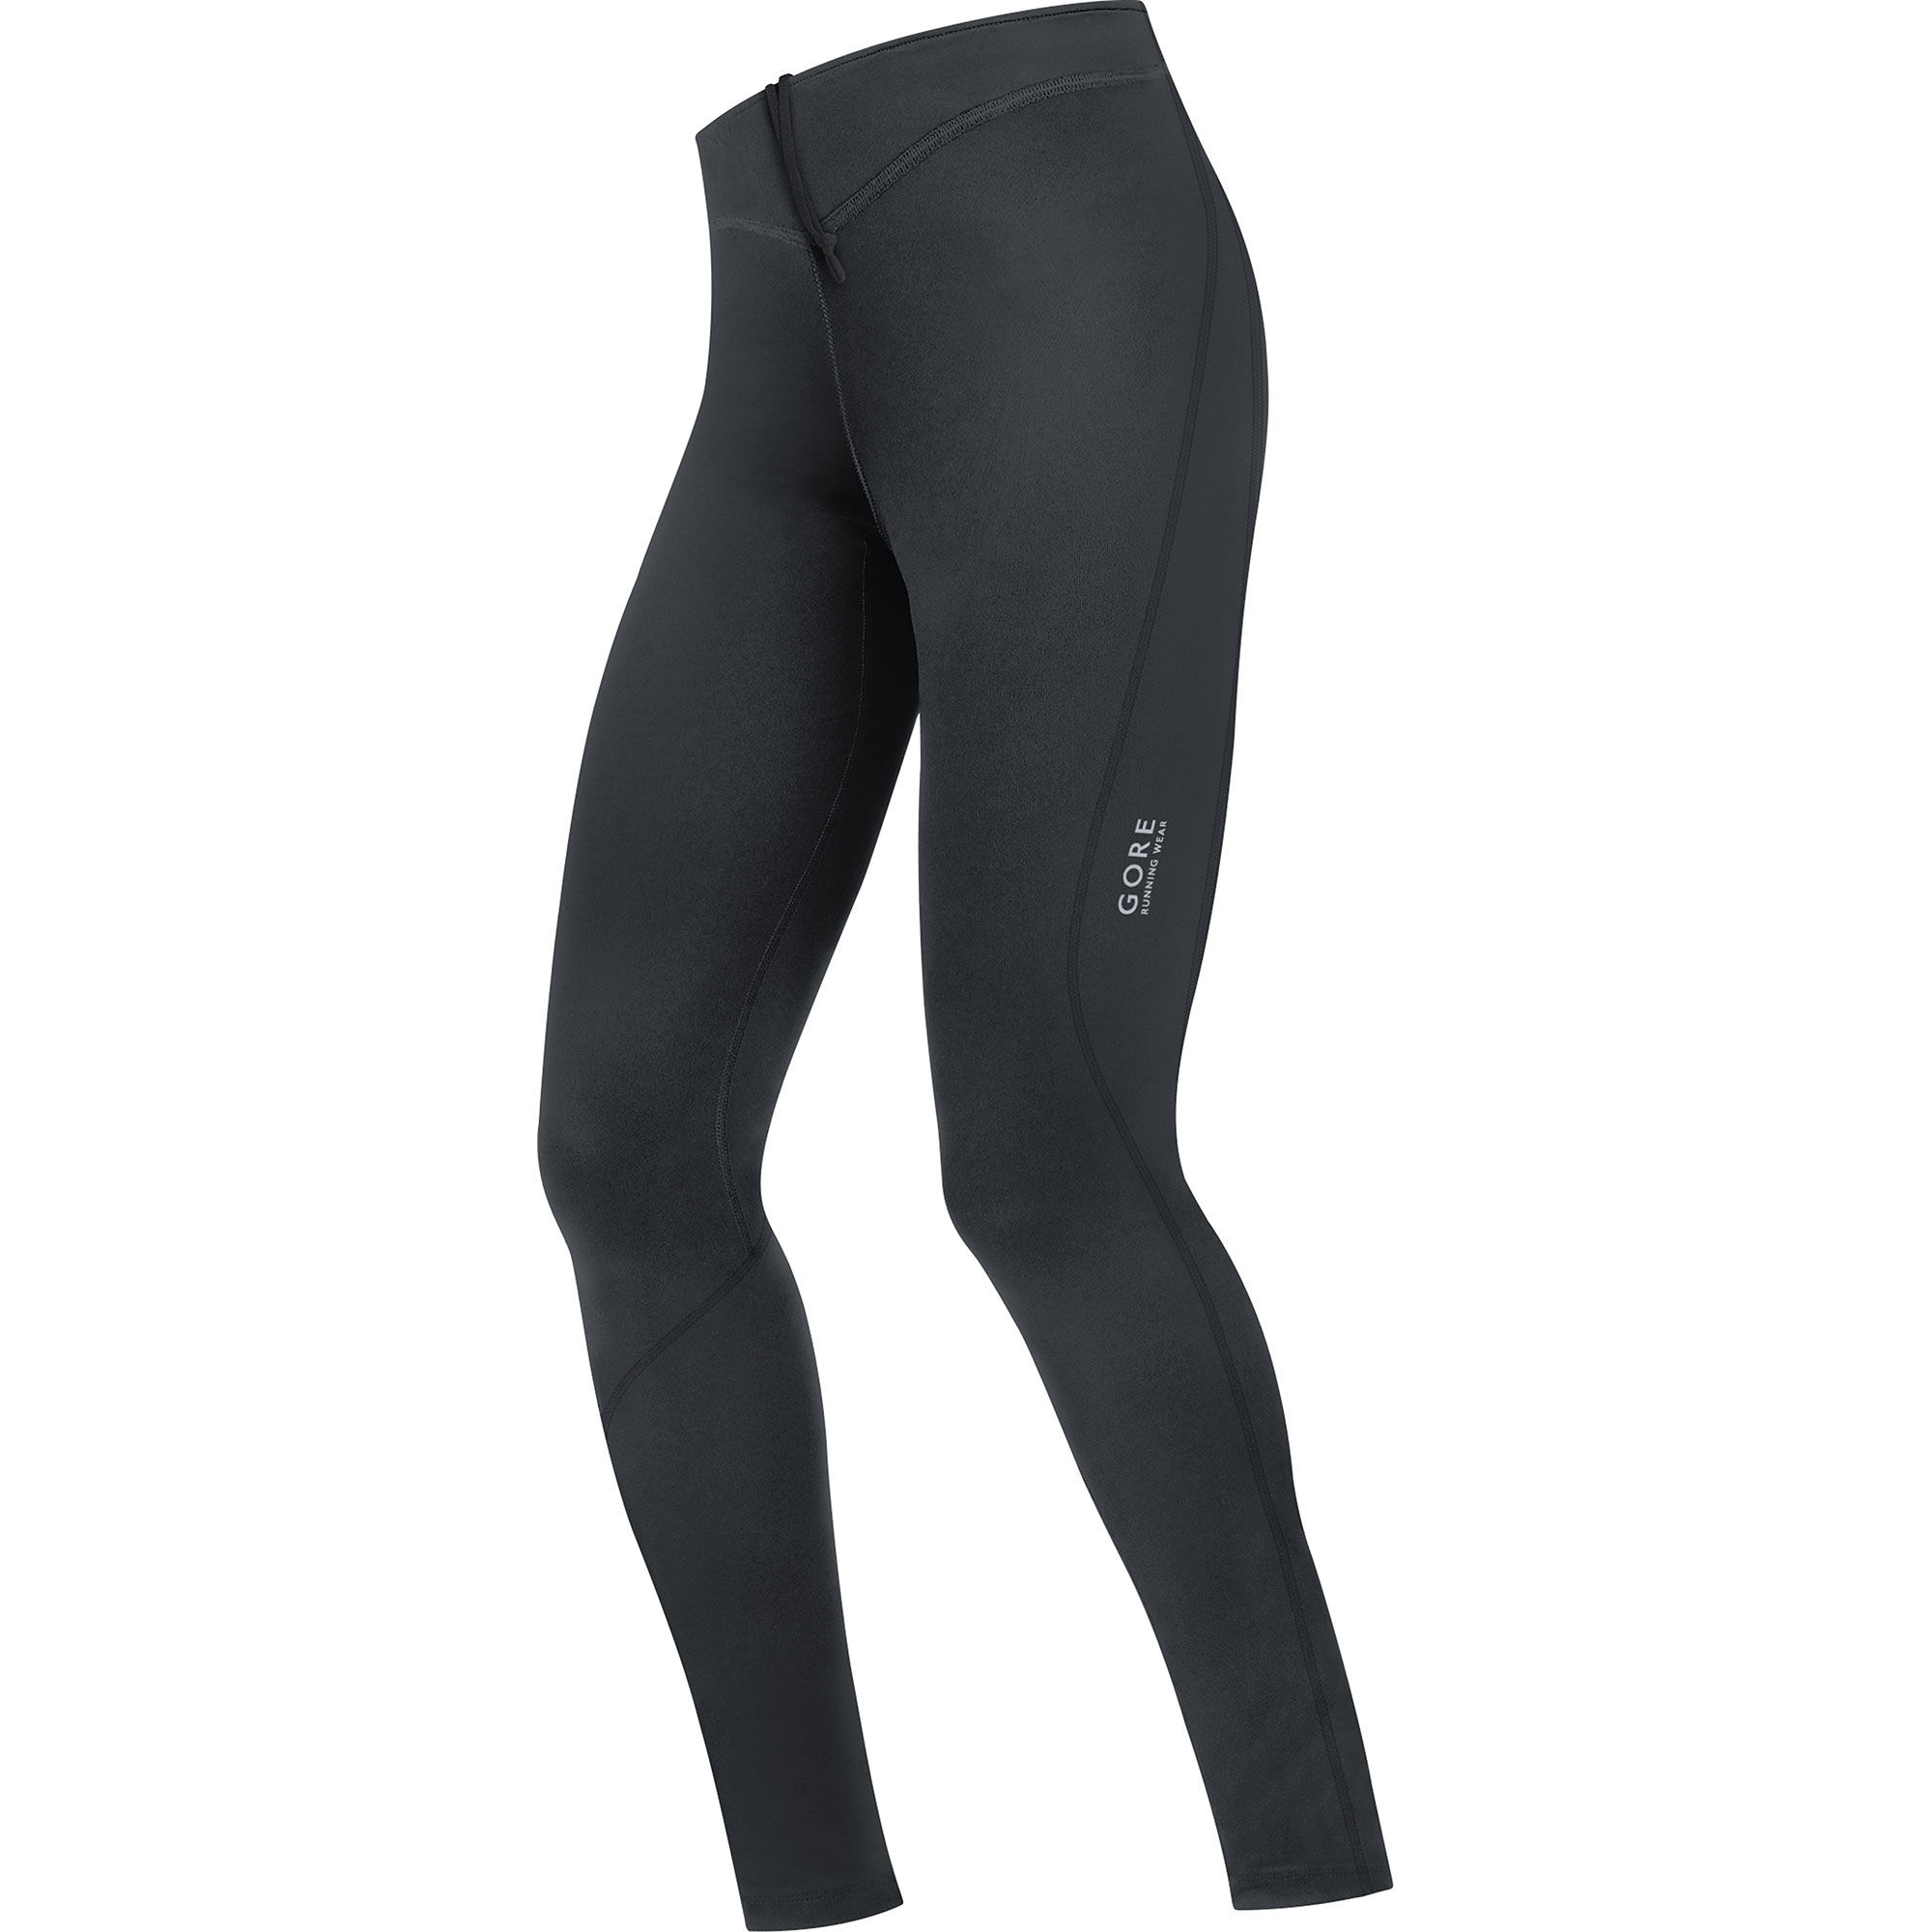 wiggle gore running wear women 39 s essential 2 0 tights. Black Bedroom Furniture Sets. Home Design Ideas